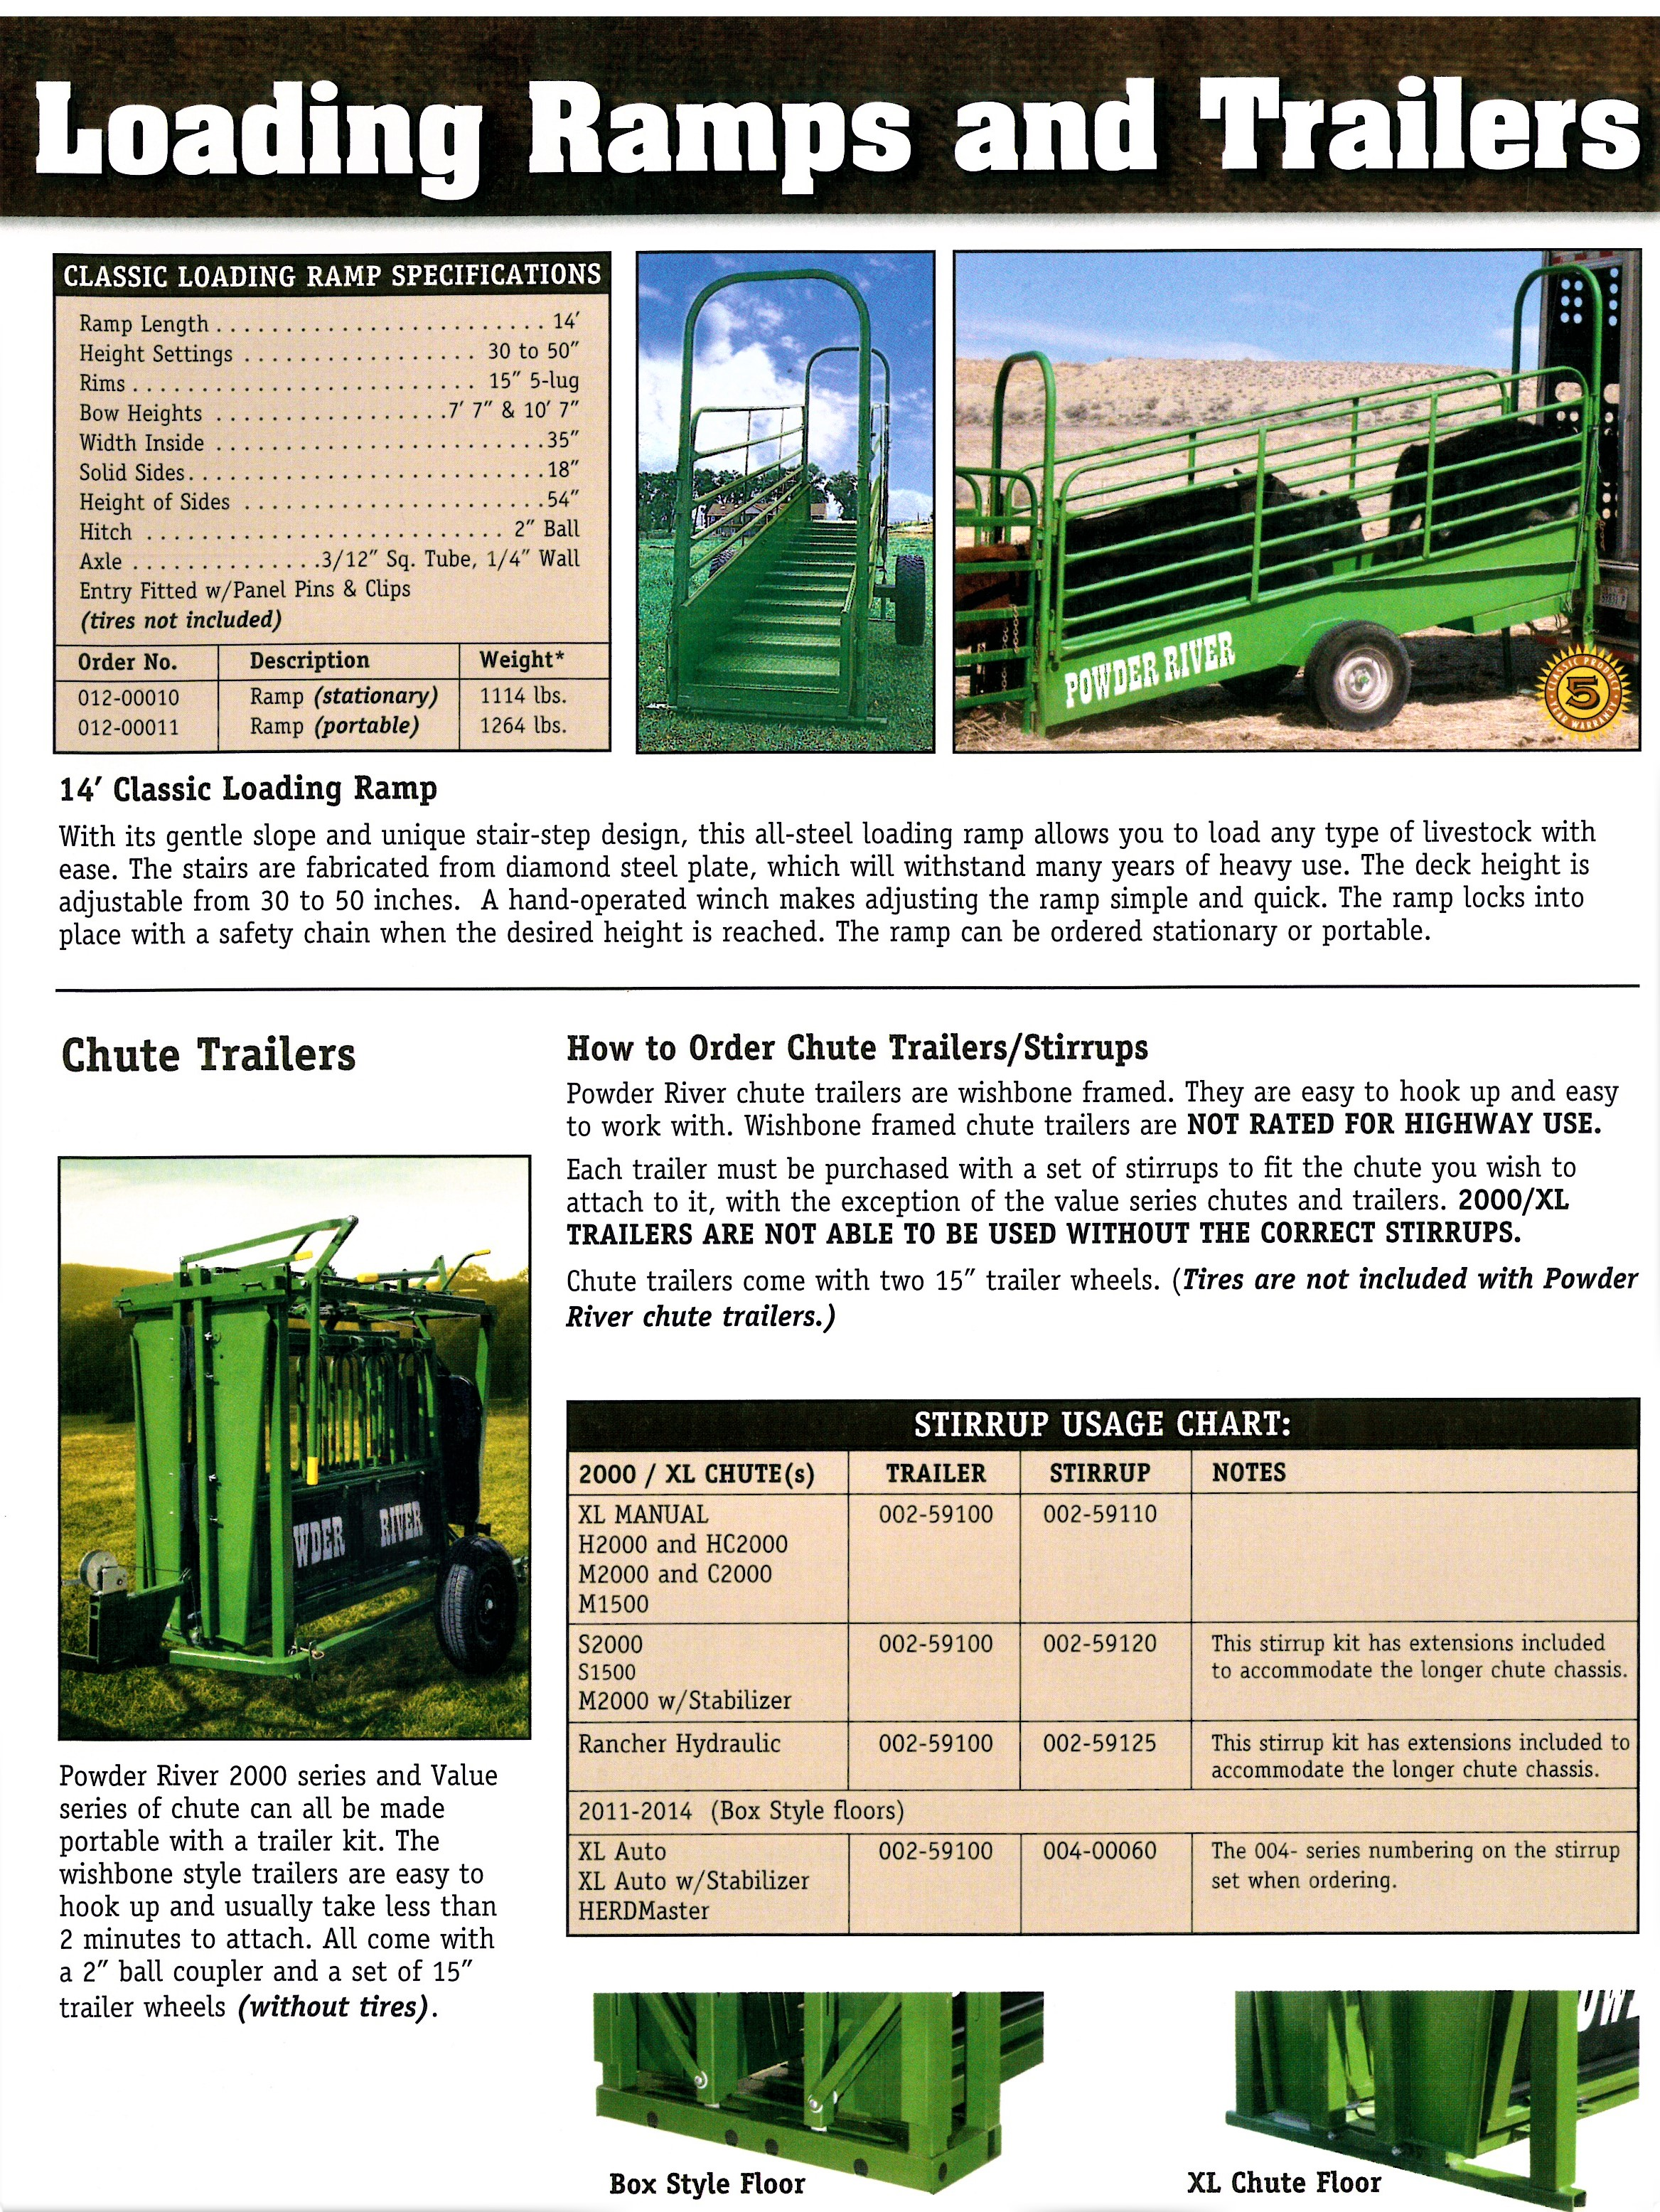 powder-river-loading-ramps-trailers-14-ft-classic-portable-order-012-00011.jpg